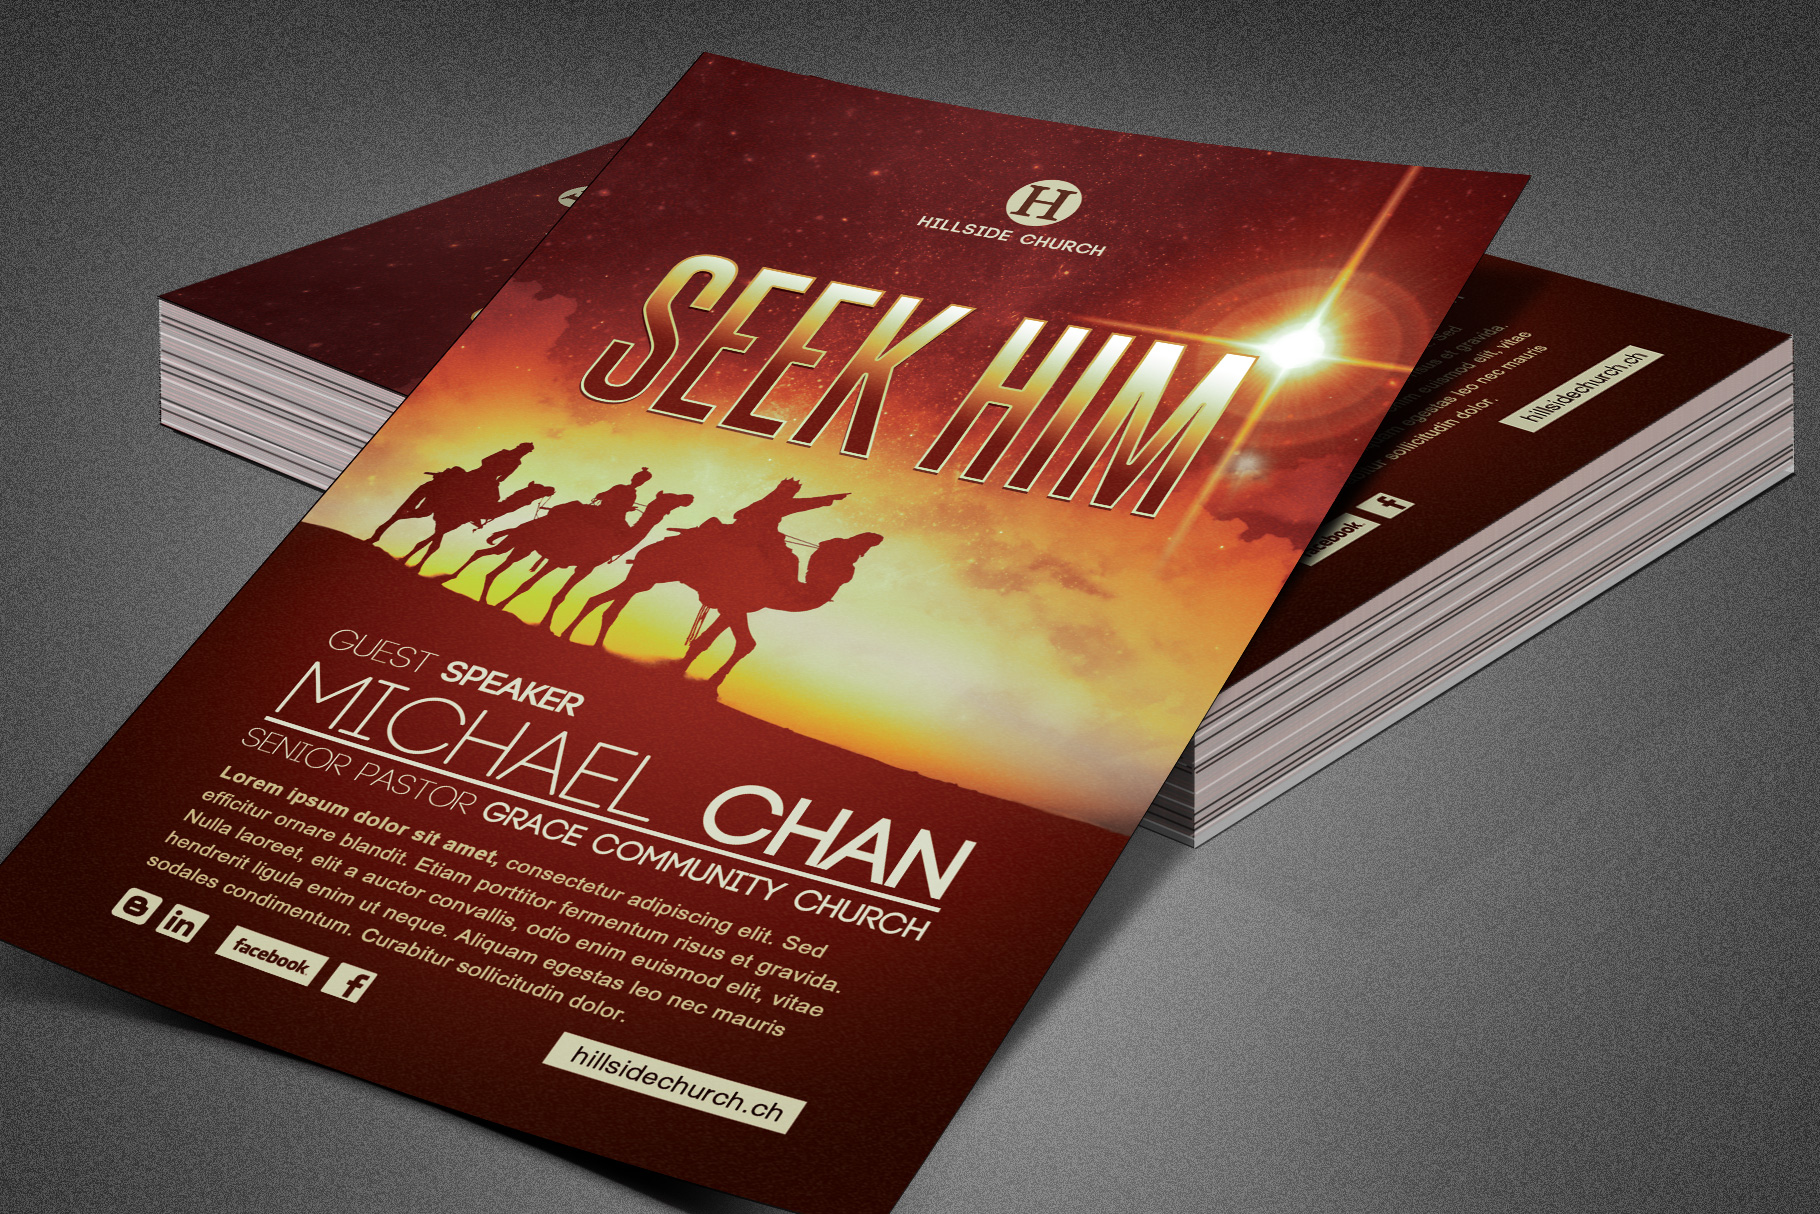 Seek Him Church Flyer Template example image 2